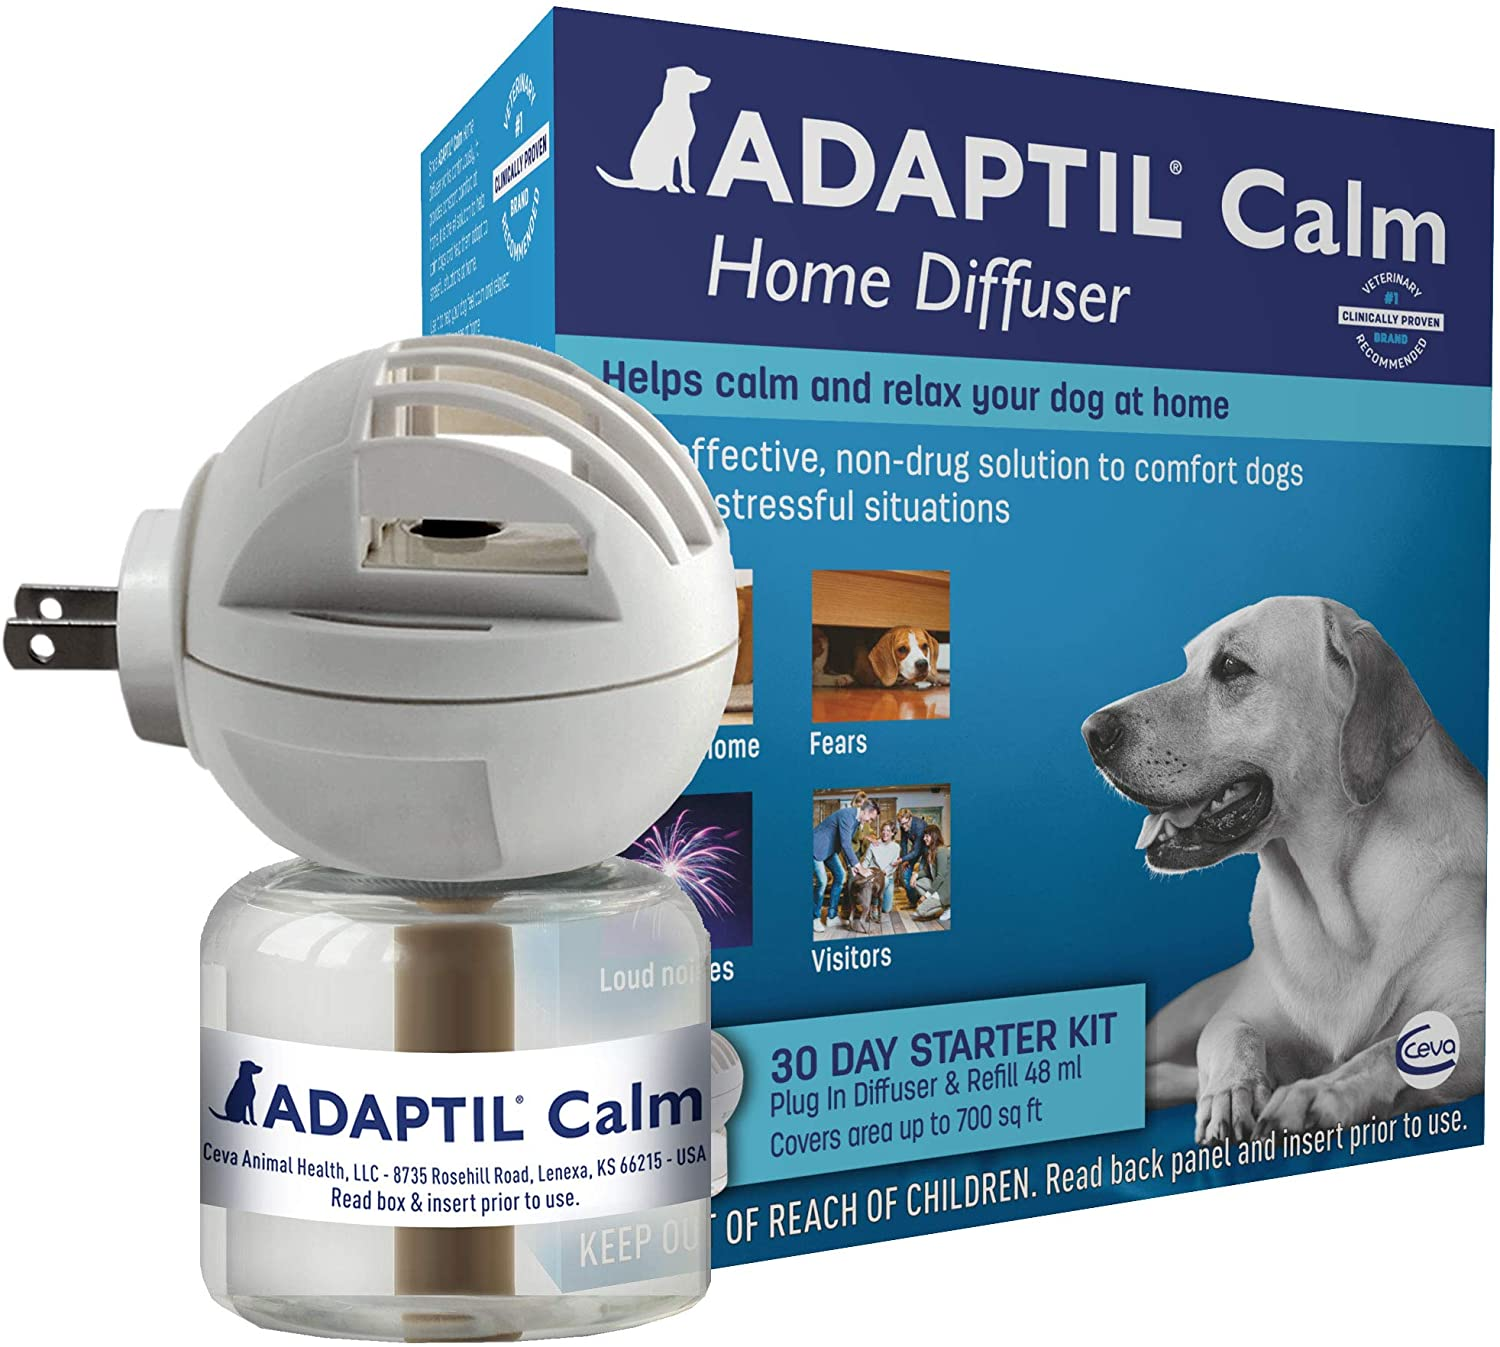 Adaptil diffuser for dogs